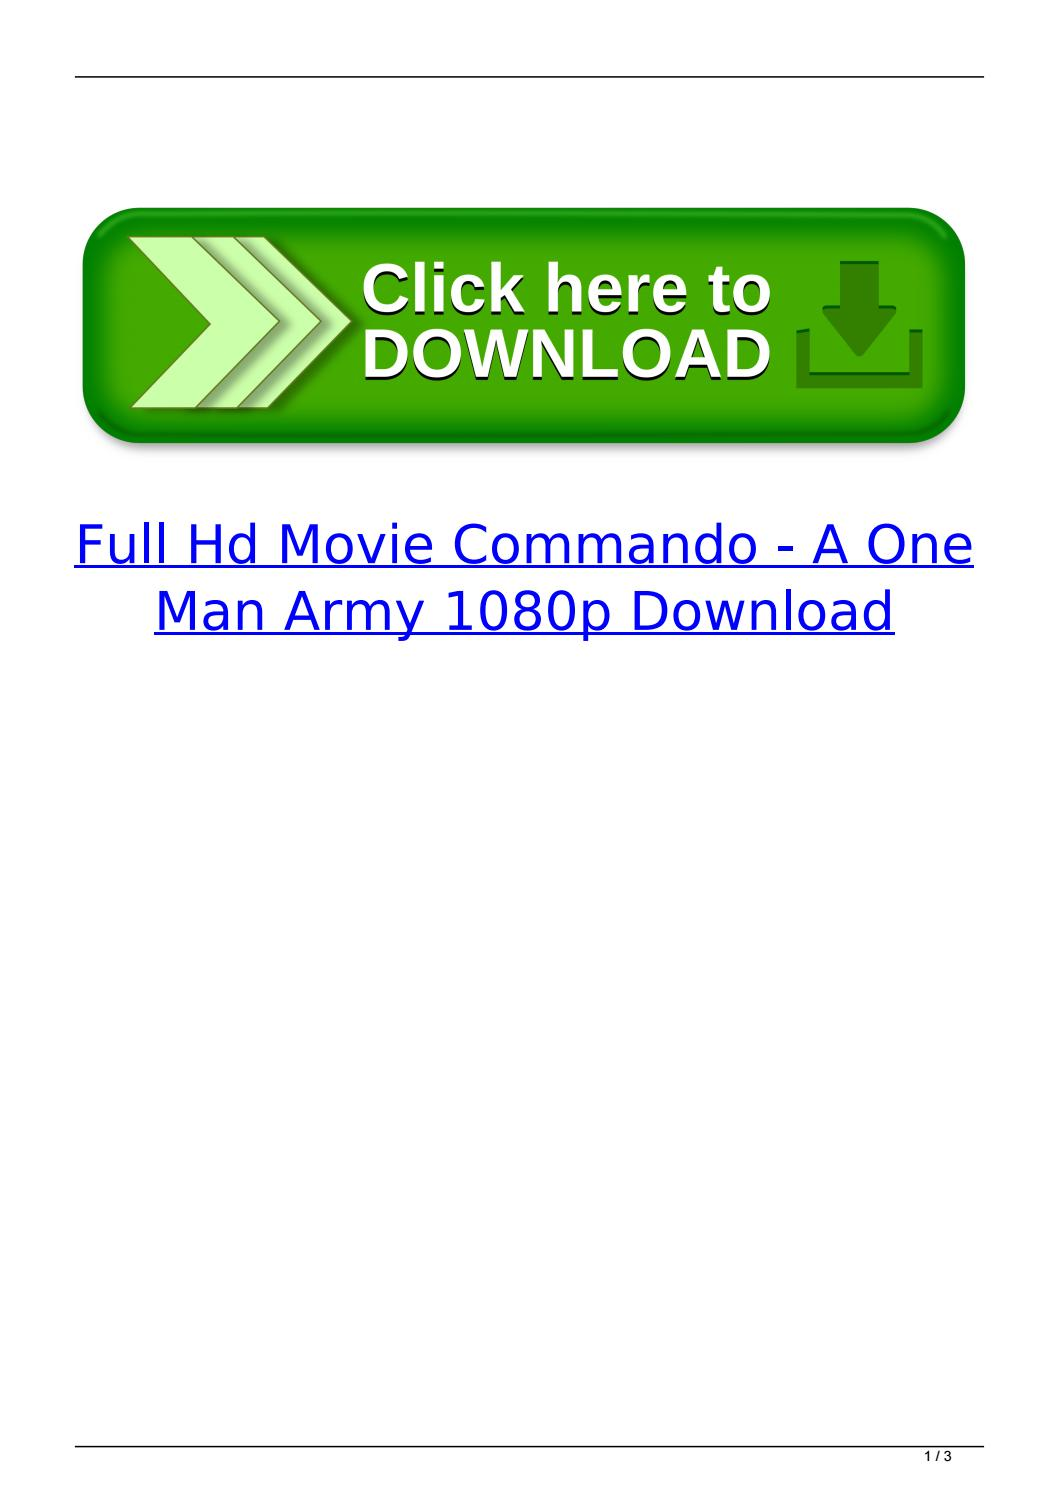 Hd Online Player Commando A One Man Army Tamil Dubbed Hyperspininstall10finalzip